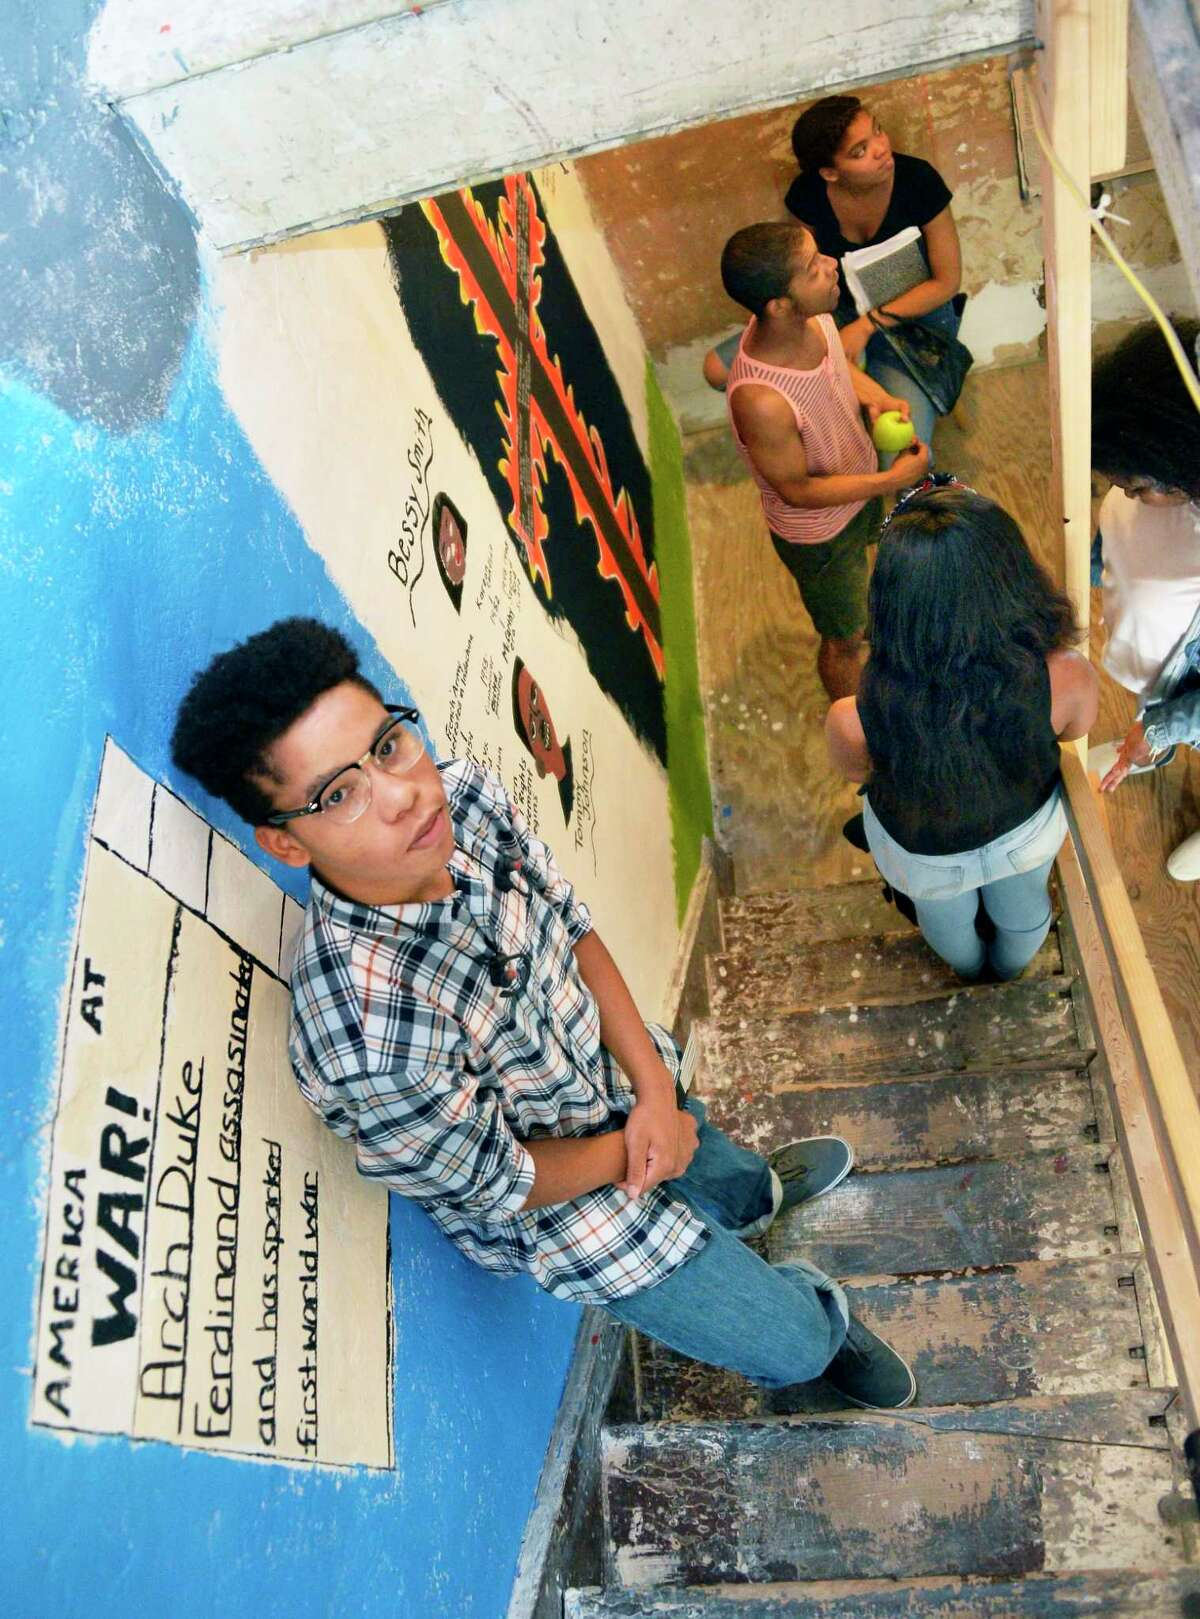 Joshua Sifontes, 16, next to his portion of a mural tribute to black history in America running along the staircase of the historic Stephen and Harriet Myers Residence Thursday August 9, 2018 in Albany, NY. (John Carl D'Annibale/Times Union)